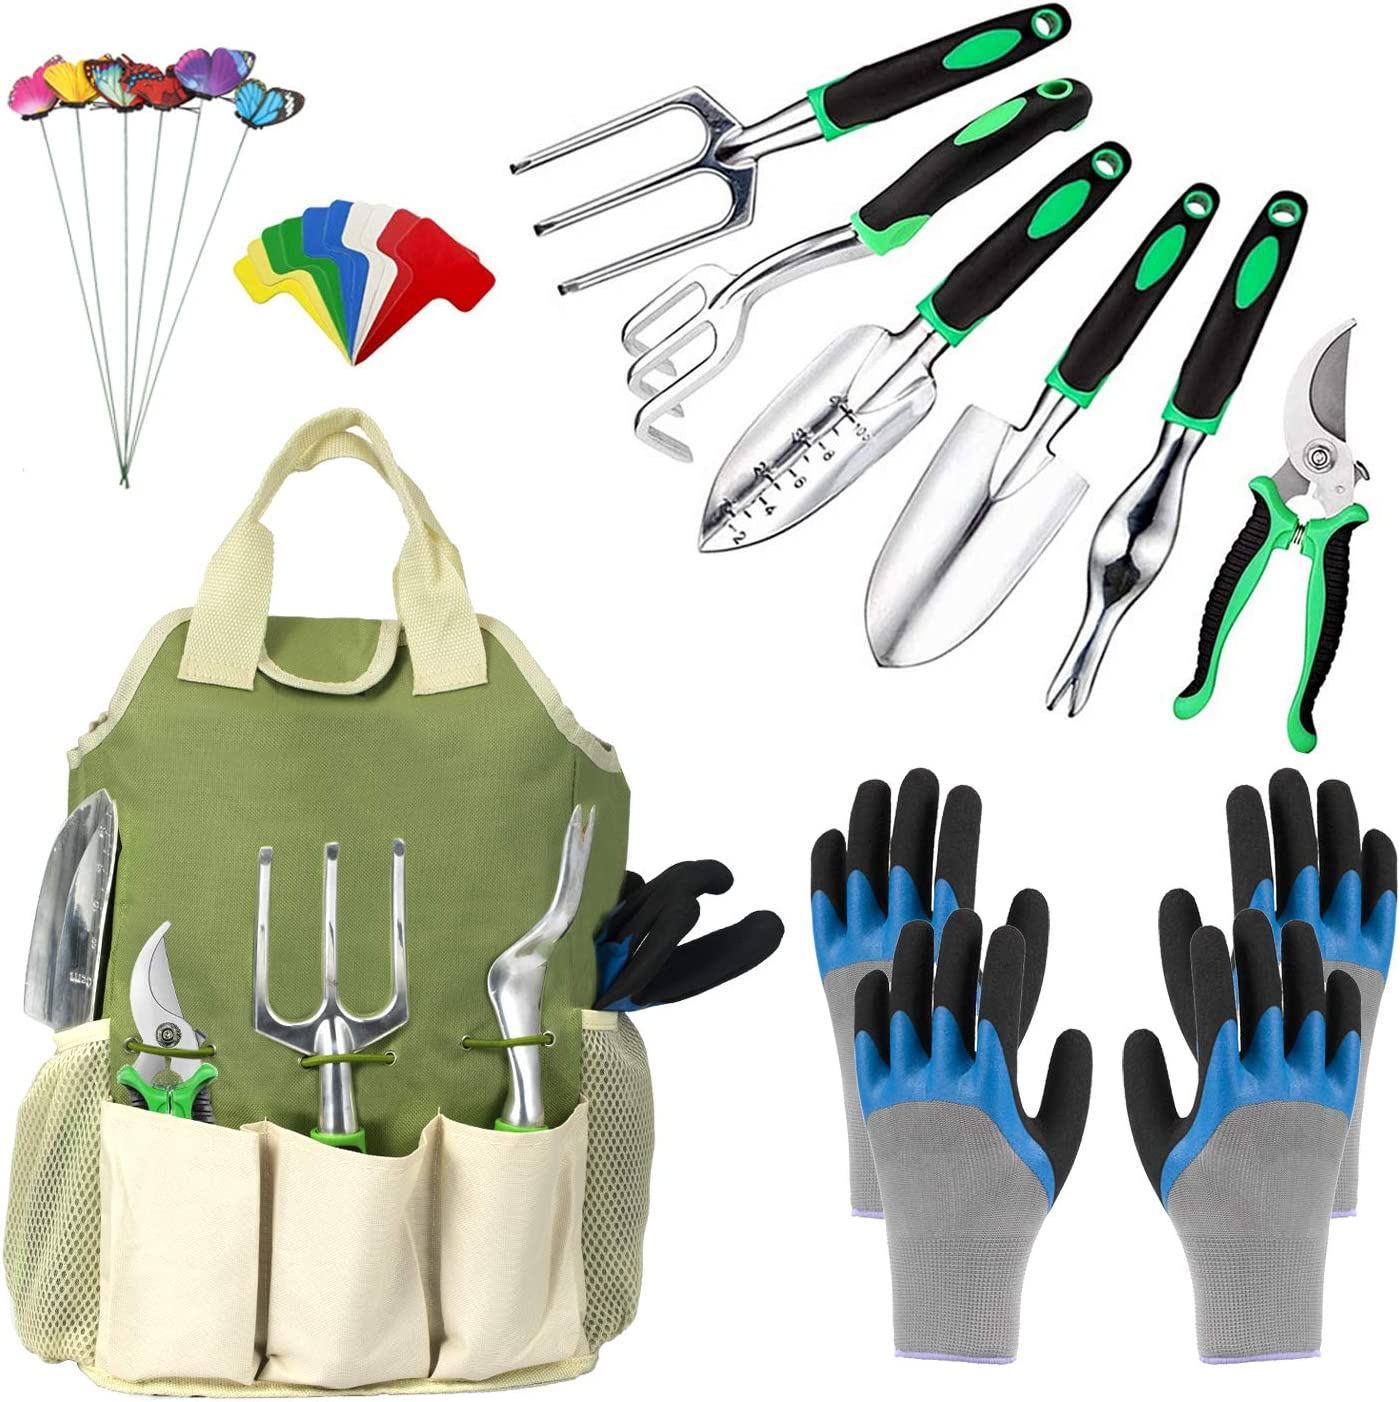 OKZEST Garden Tools Set 25 Pieces, Gardening Kit with Heavy Duty Stainless Steel Hand Tool with Organizer Tote Bag and Garden Gloves, Gardening Tools Set Gift for Women Men